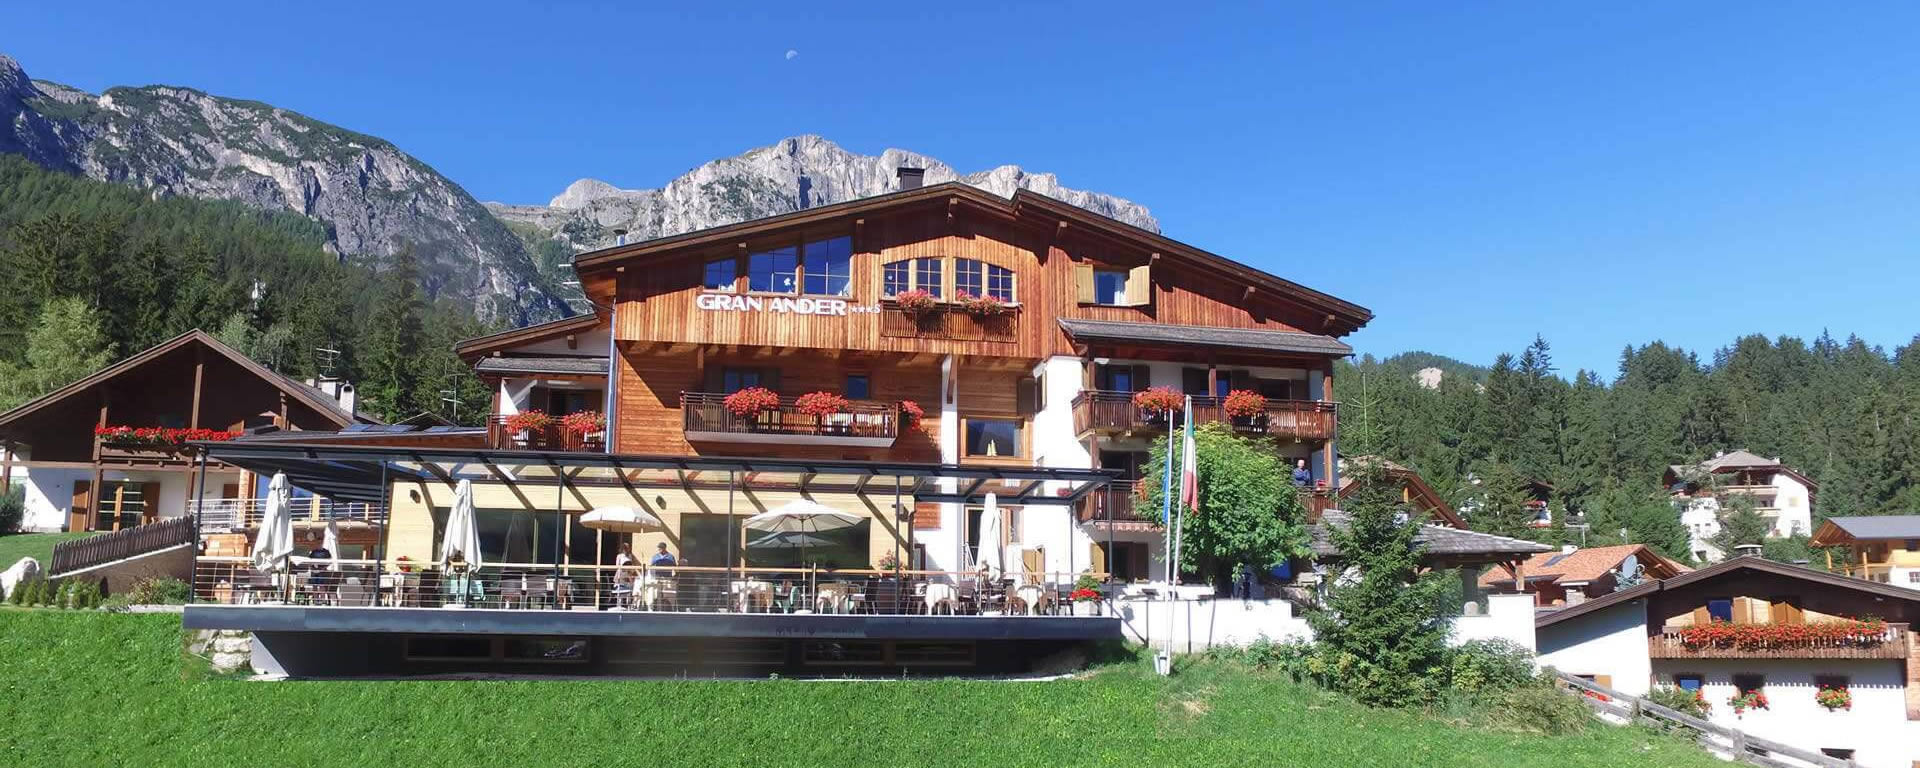 The hotel in our Ultimate Dolomites Trip